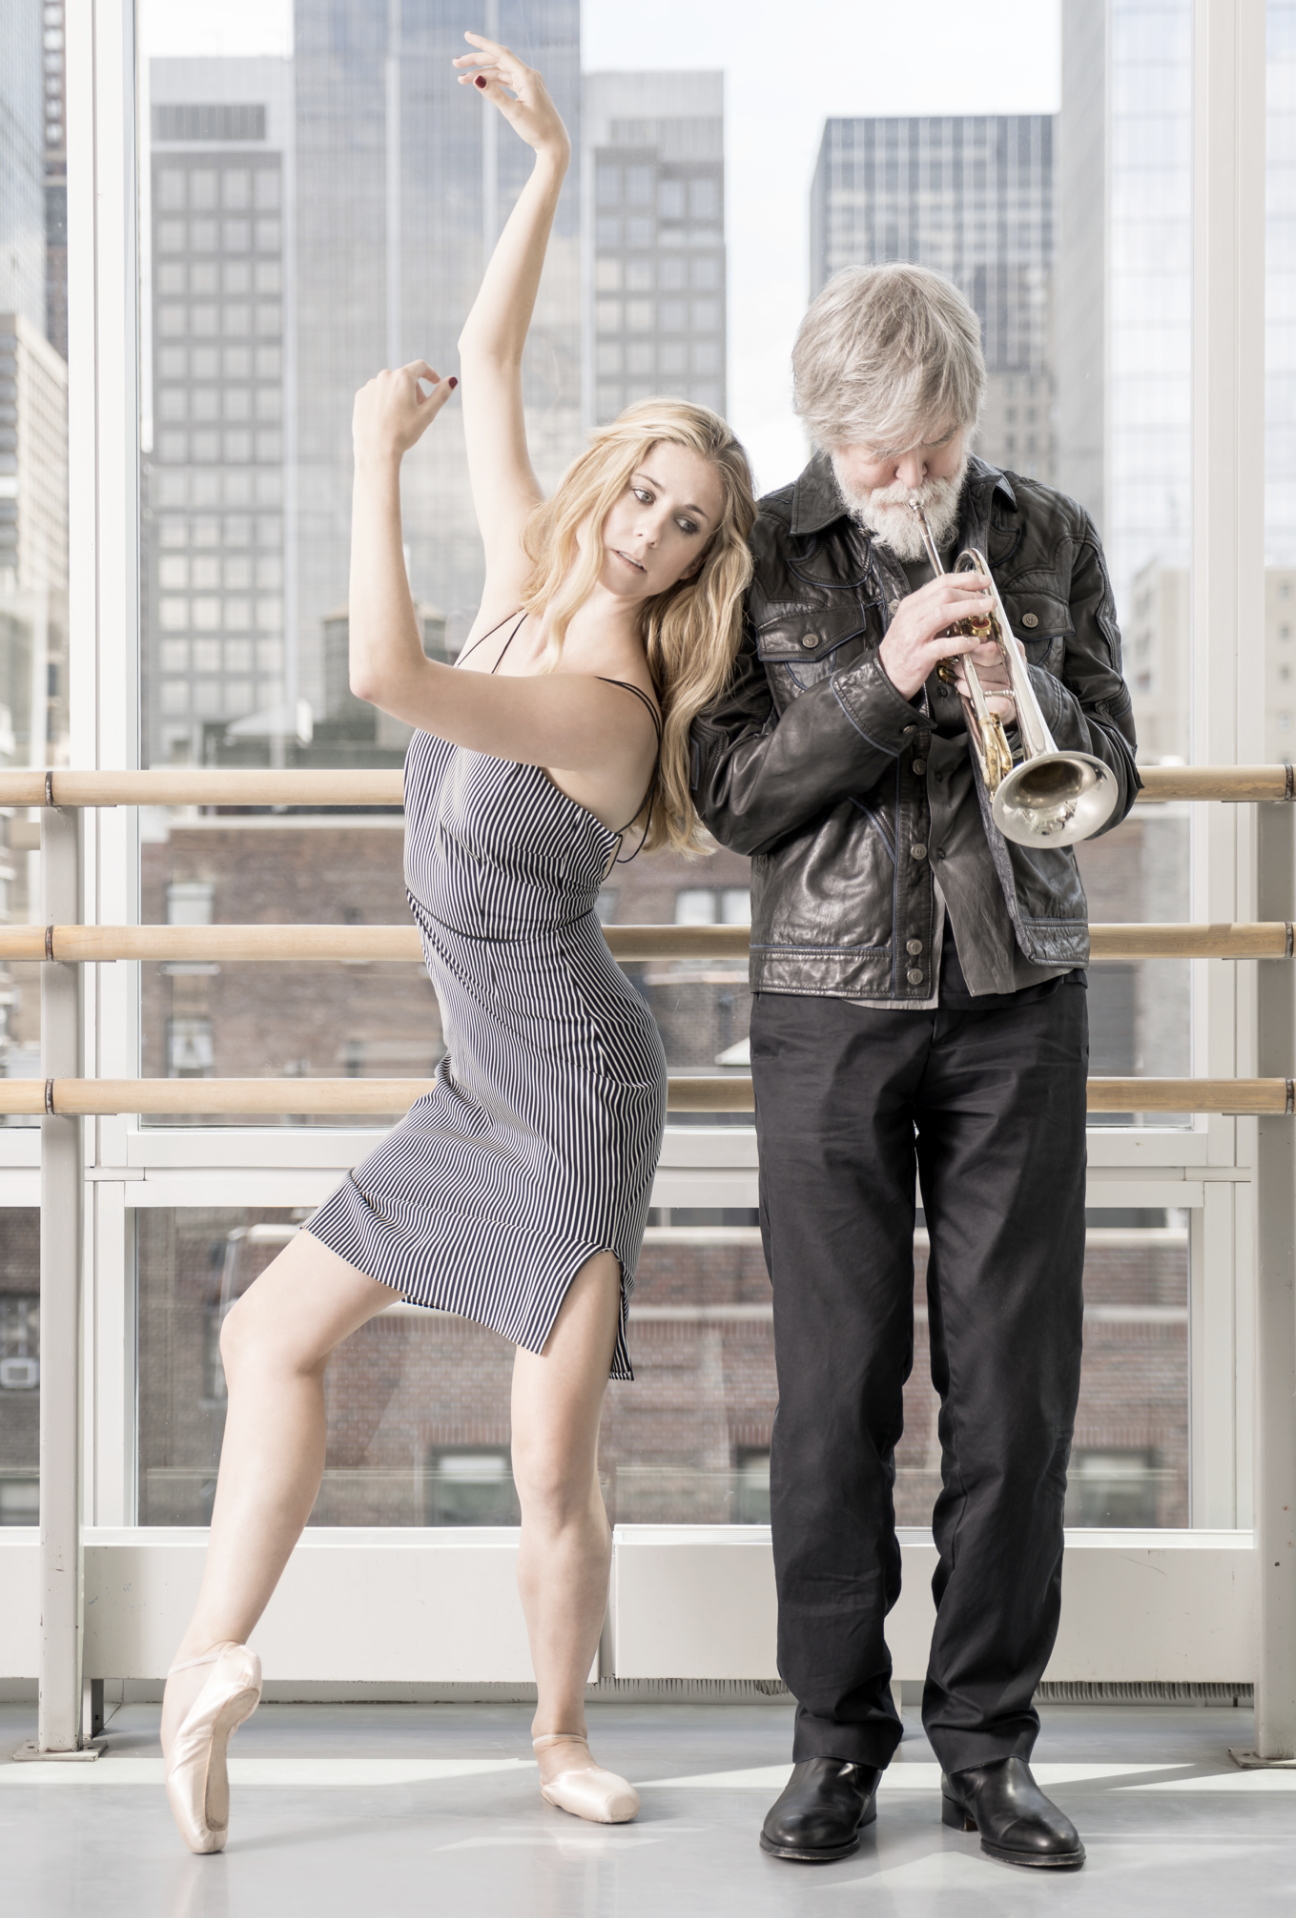 Michele Wilens in a black and white strapeless dress and pointe shoes leans against musician Tom Harrell who plays a trumpet